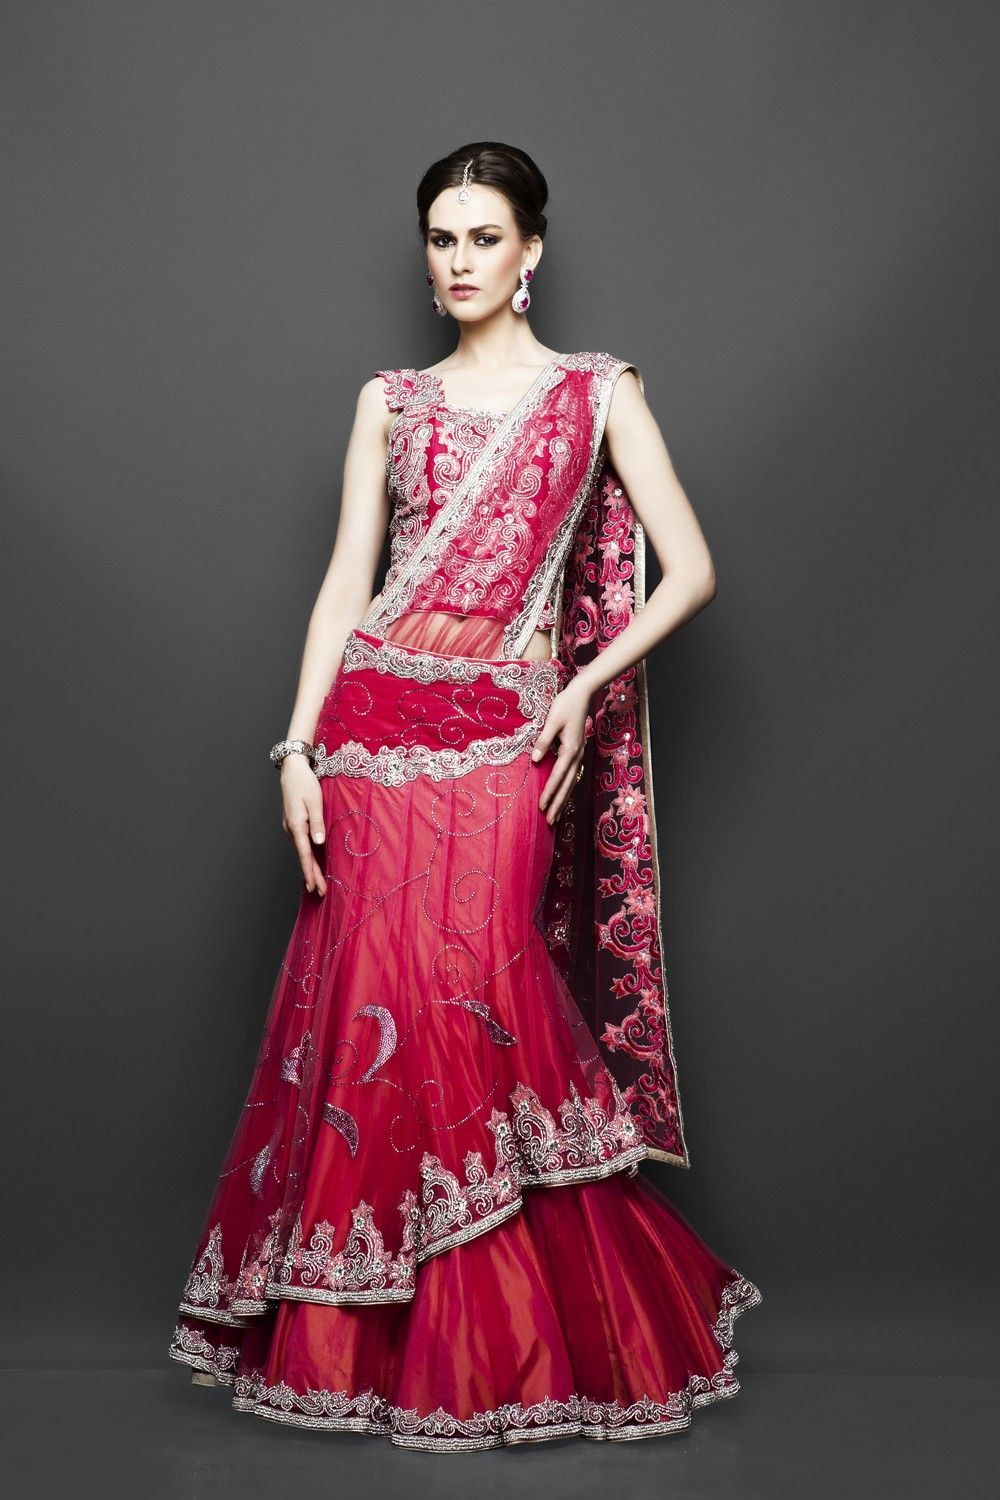 Coral pink double layer outfit south asian glamour pinterest